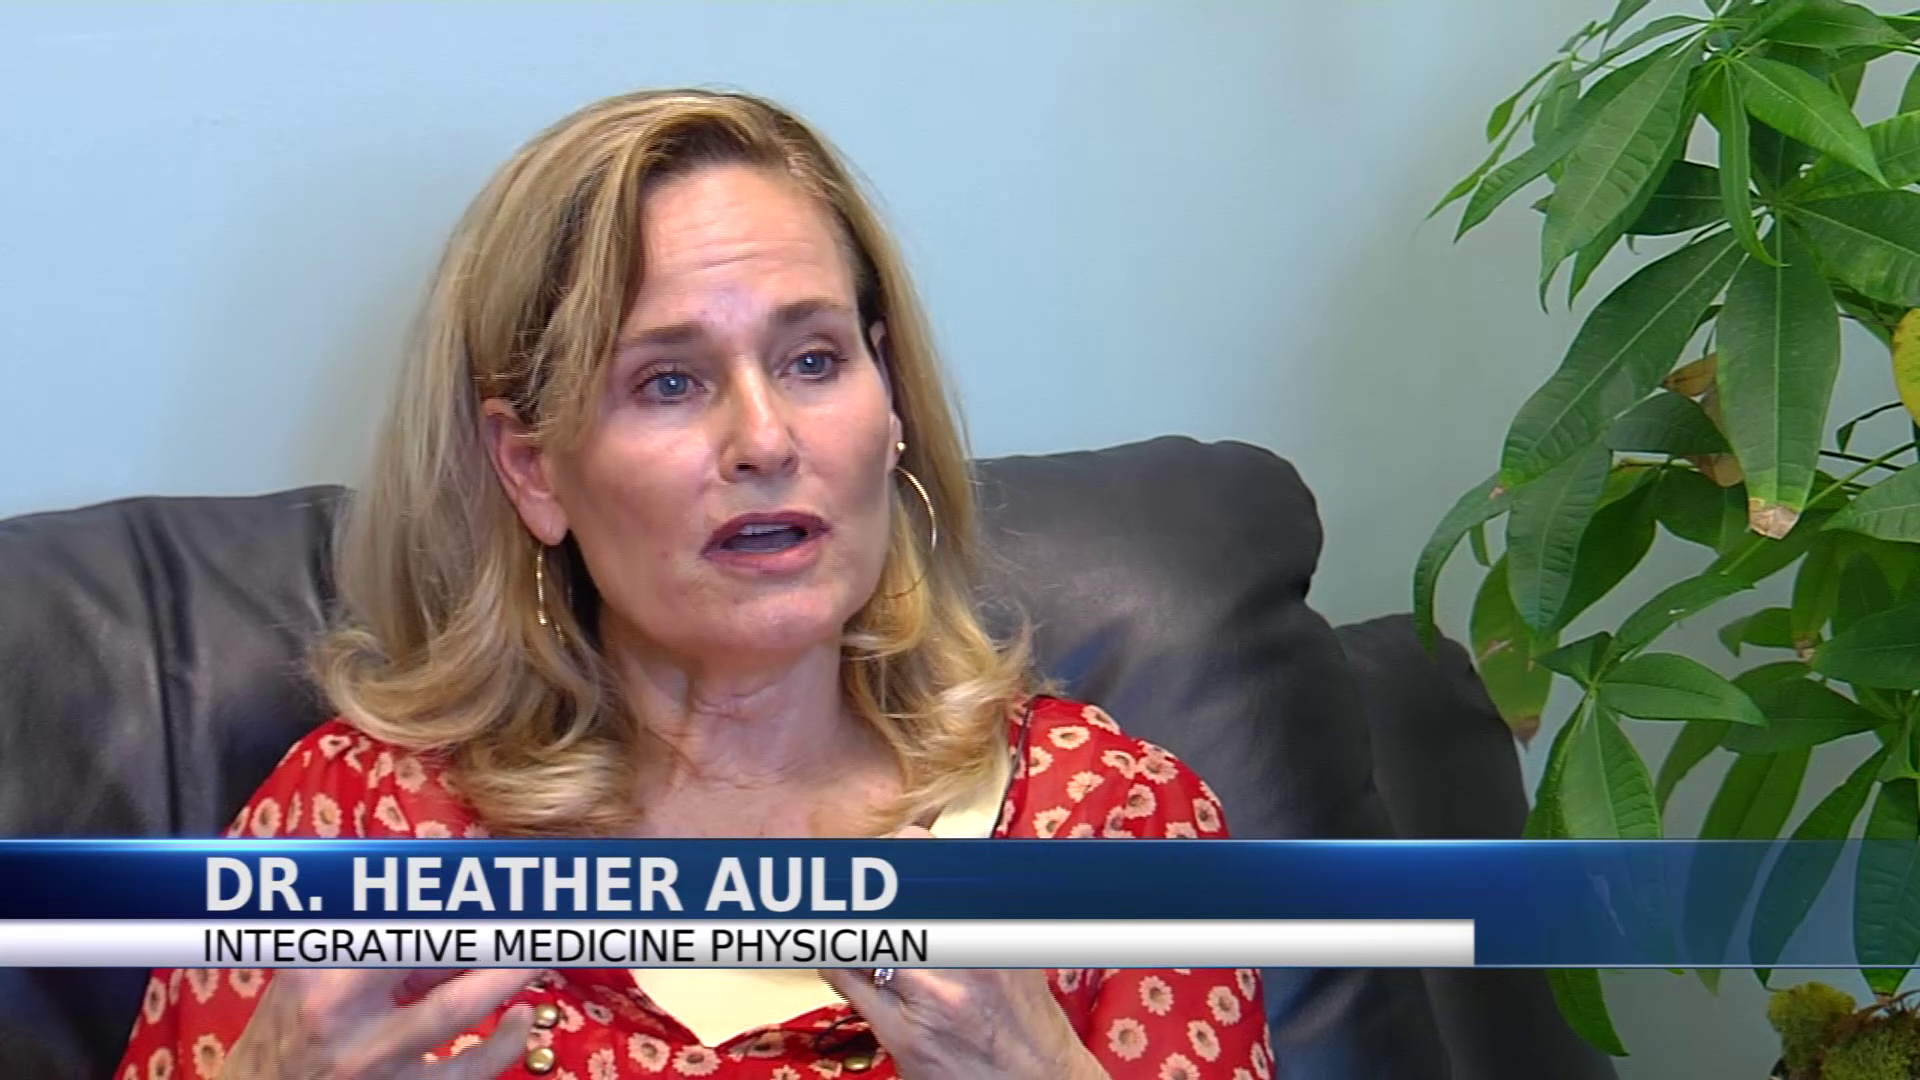 Dr. Auld talks about her practice